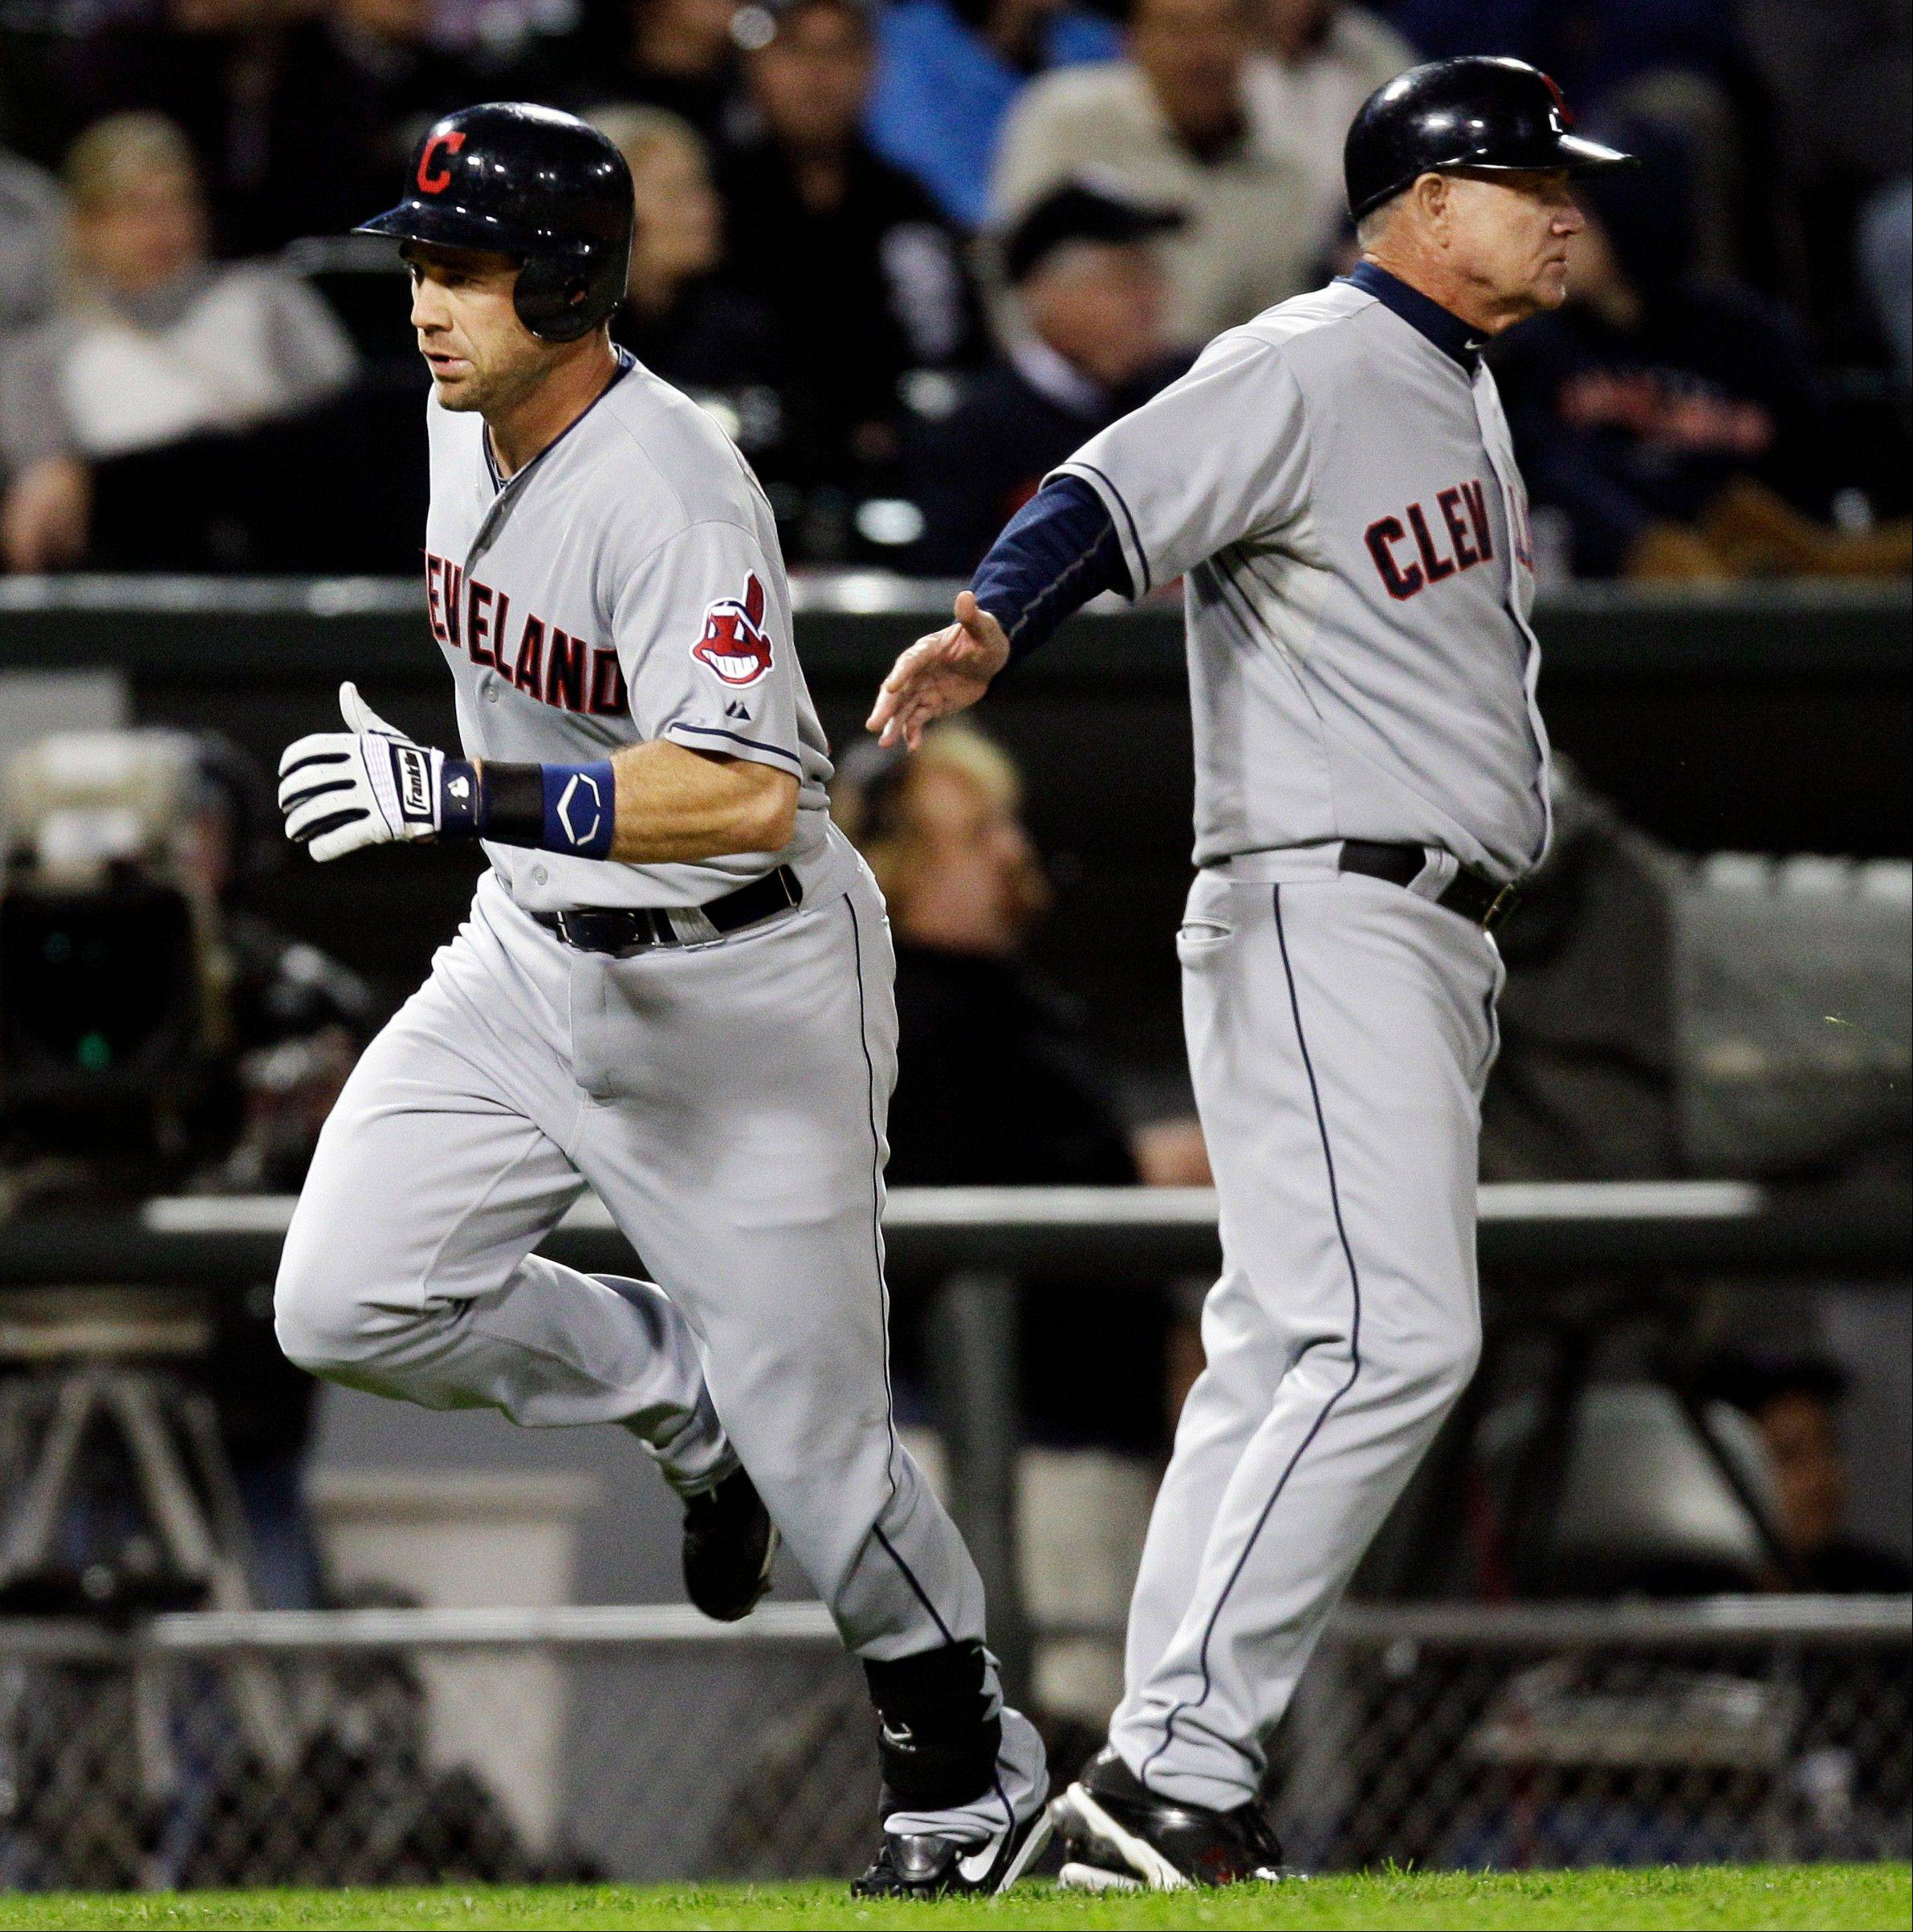 The Indians� Vinny Rottino celebrates with third-base coach Steve Smith after hitting a solo home run in the eighth inning to put the White Sox behind 6-4.